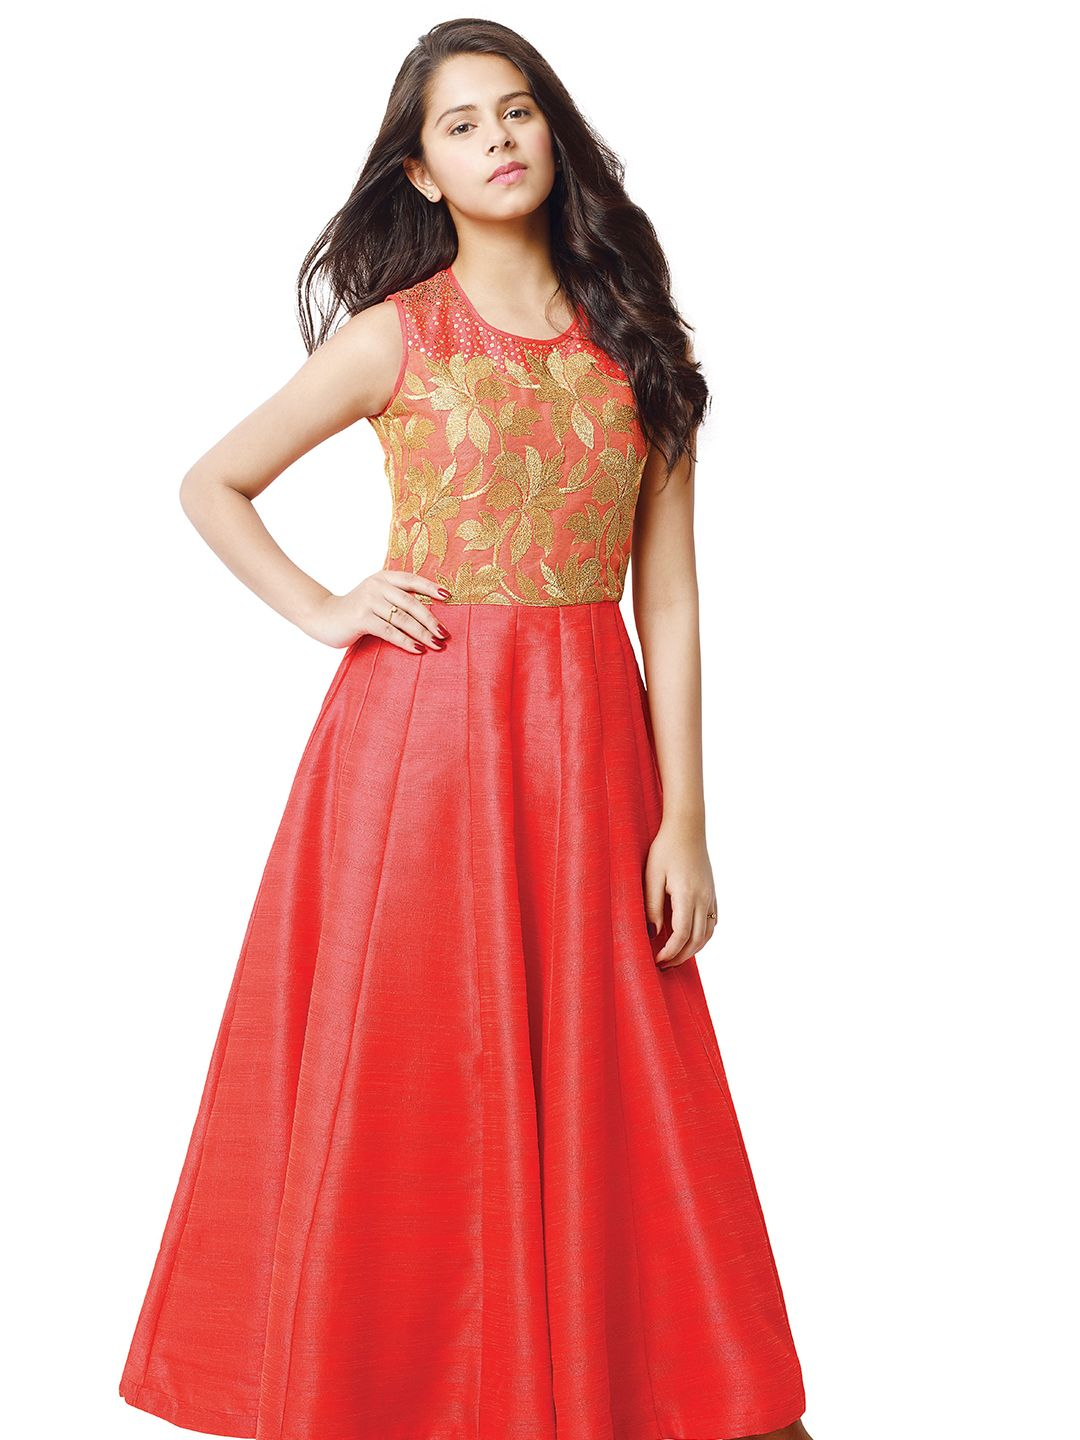 G3 Exclusive Red Party Wear Raw Silk Girls Gown | Girls Gown G3 ...